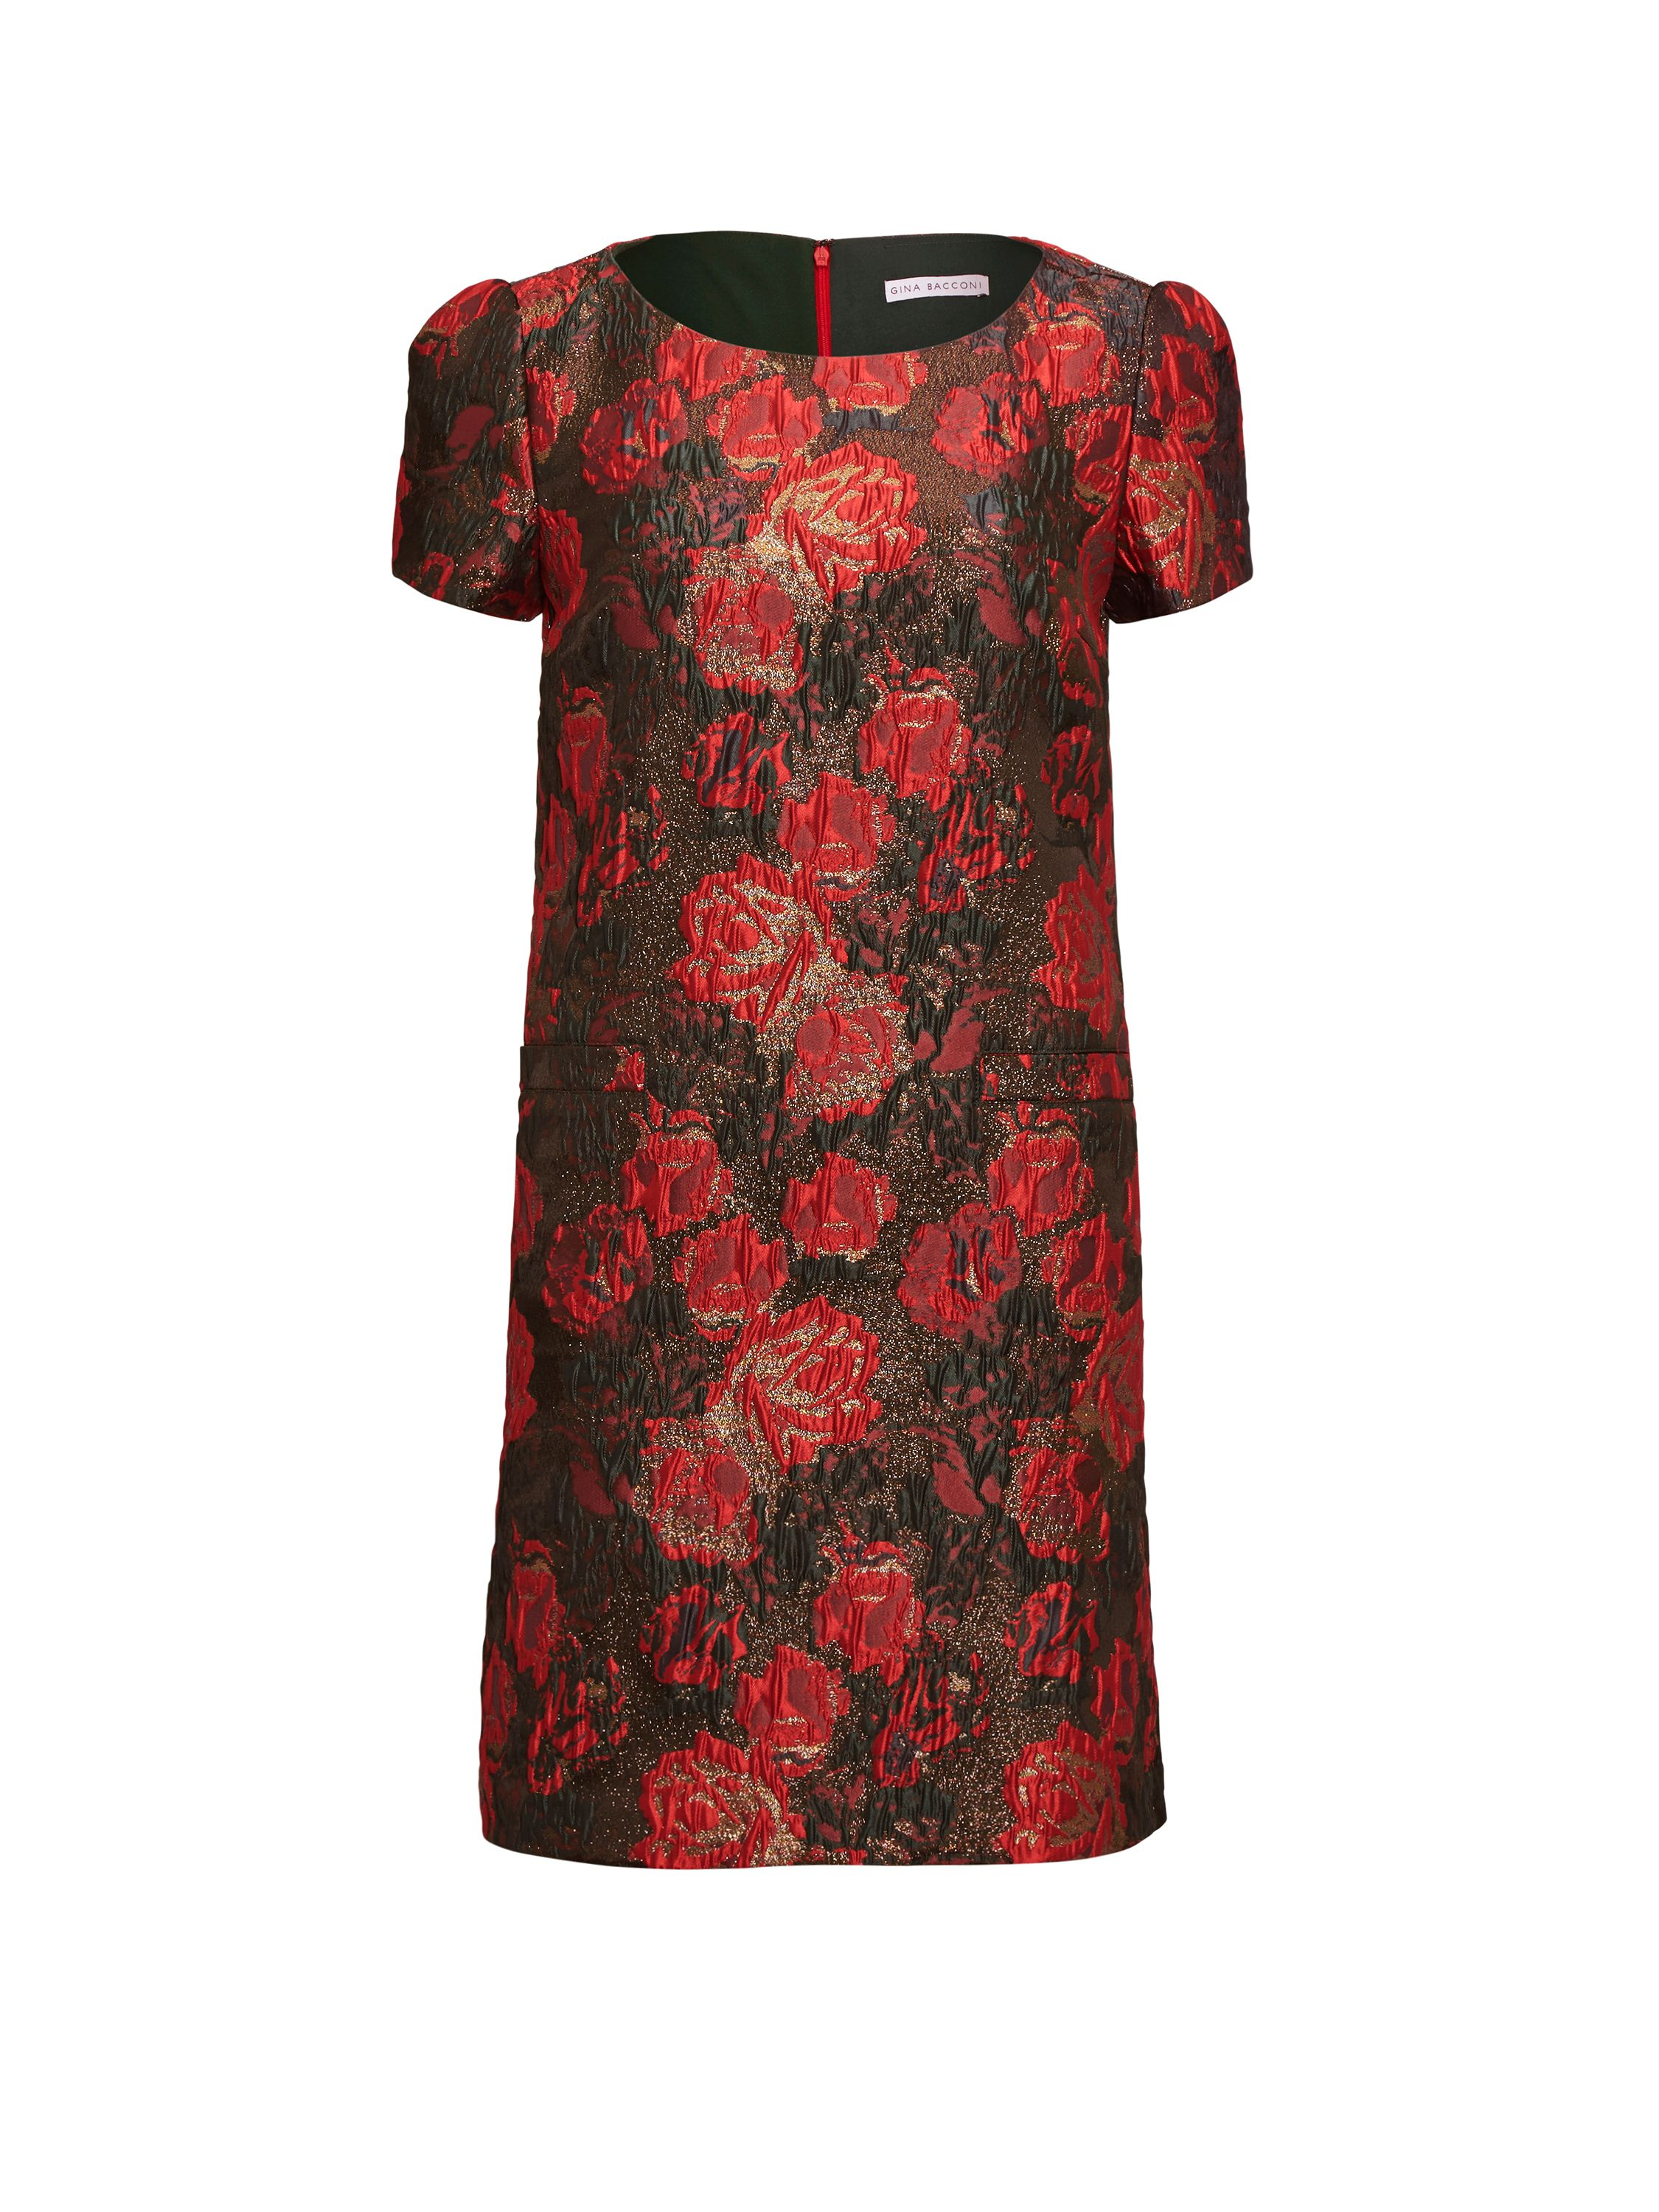 Gina Bacconi Matelasse Metallic Jacquard Dress, Red